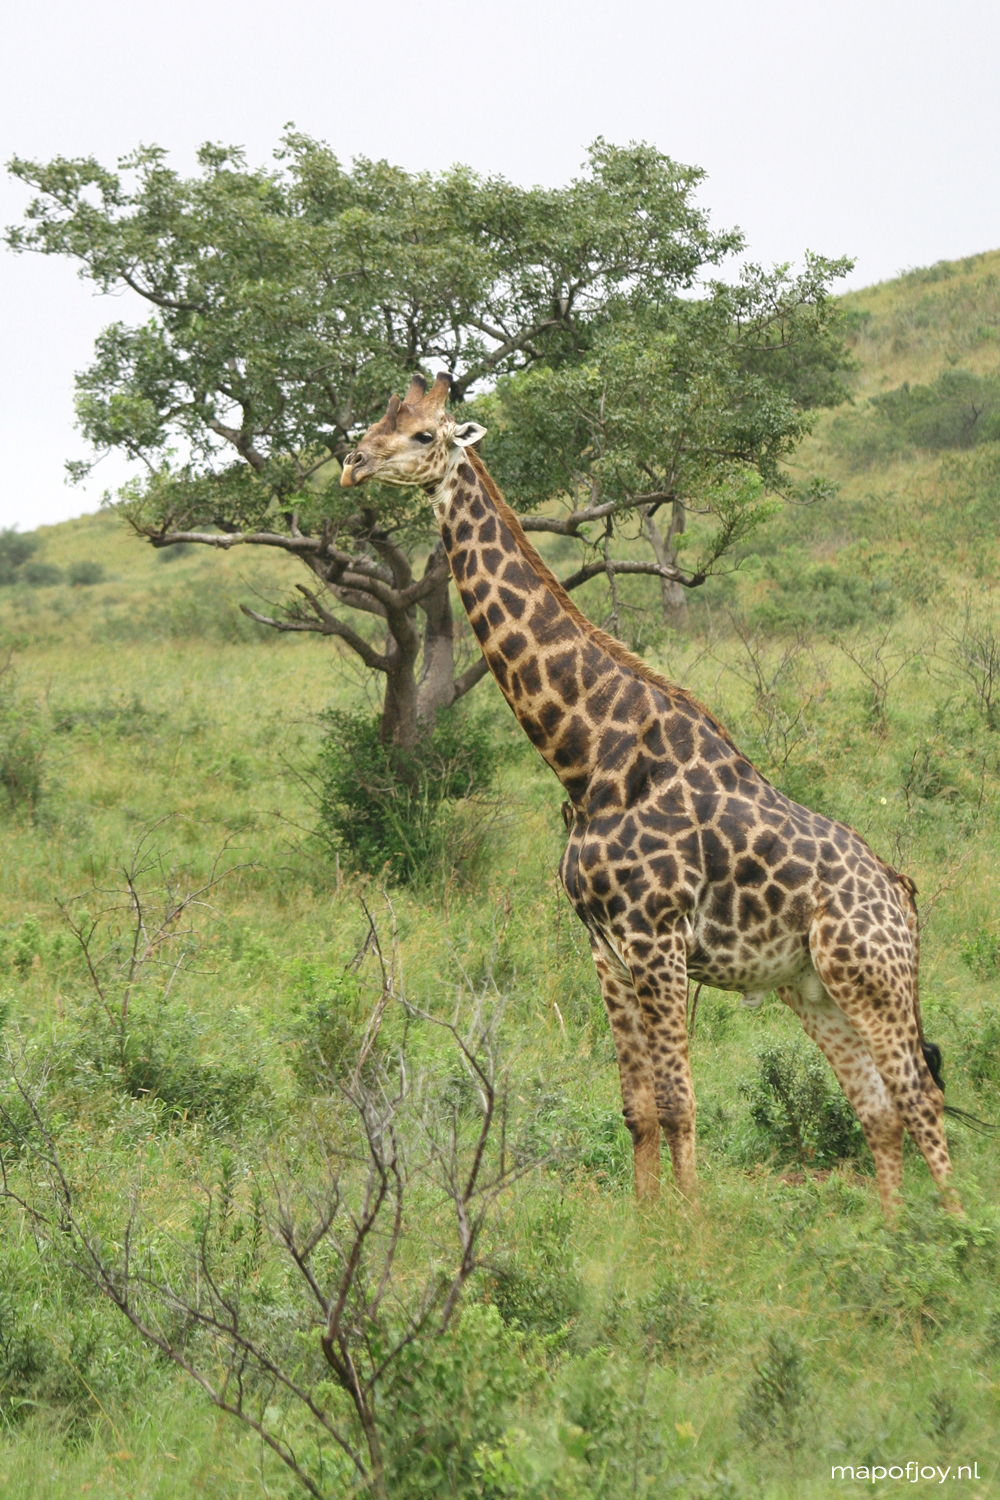 Safari Hluhluwe Umfolozi, South-Africa, travel, giraffe - Map of Joy